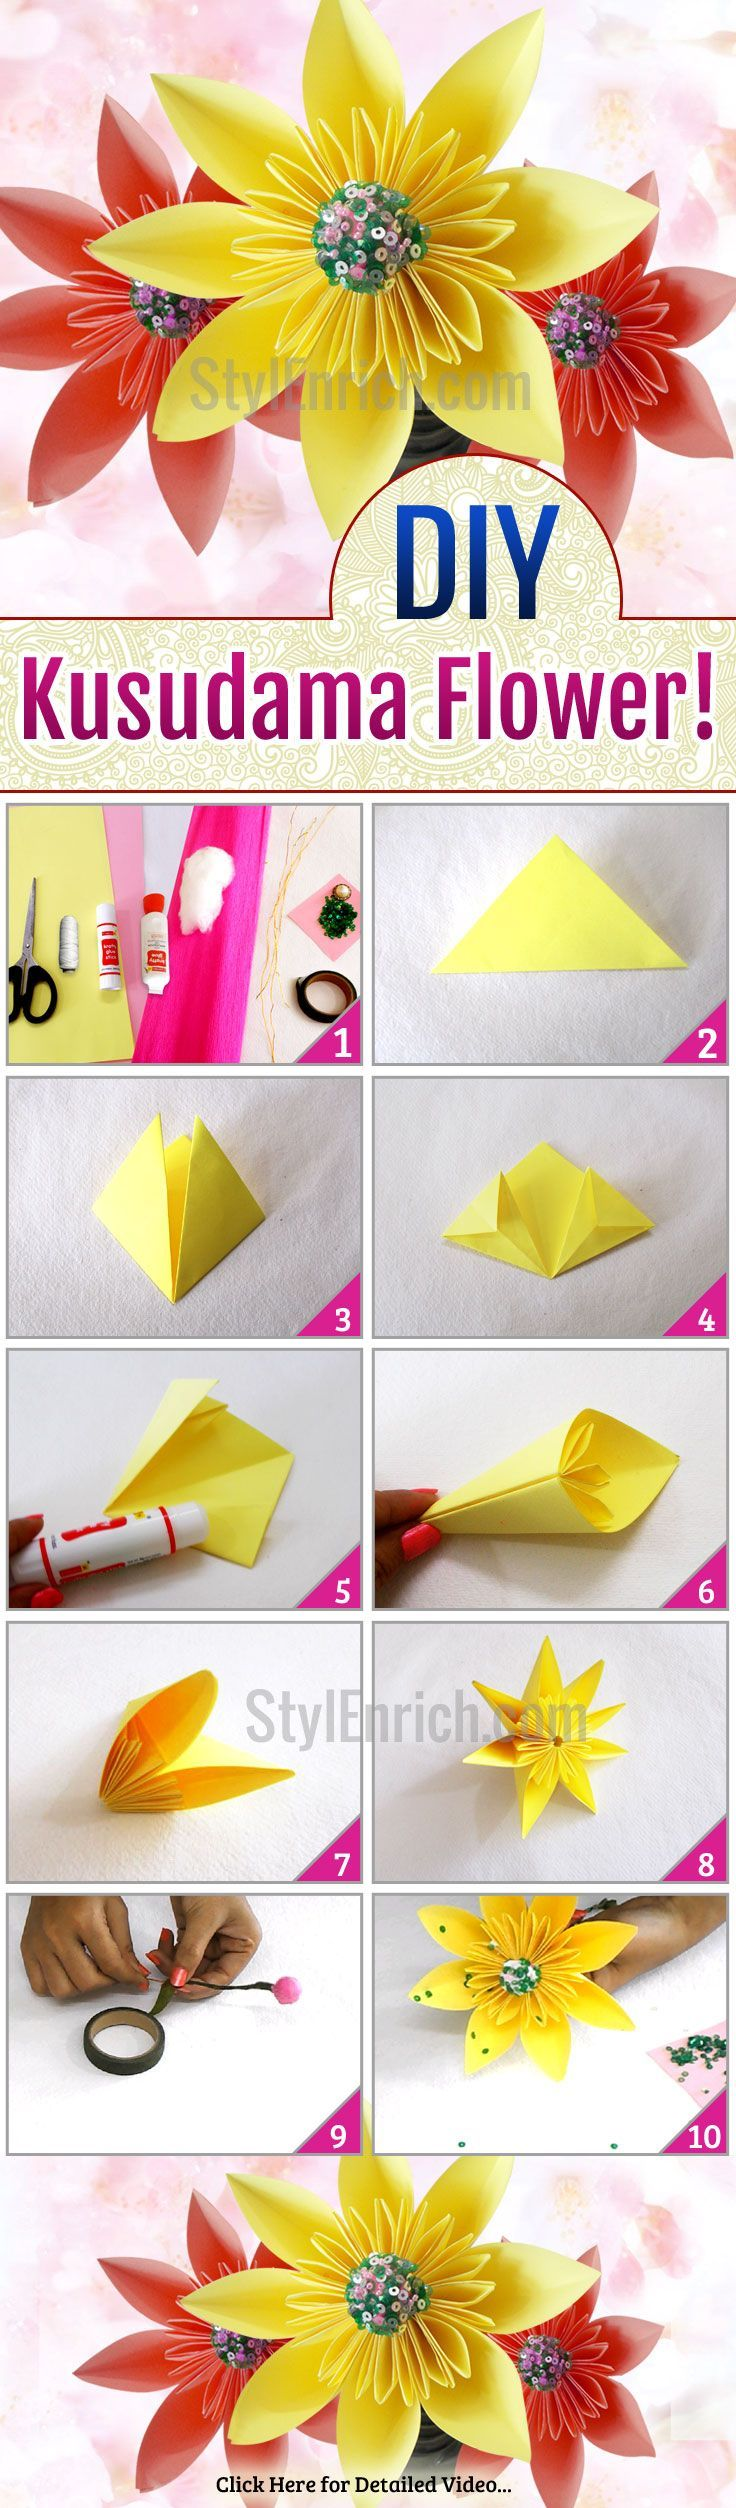 Want to know how to make beautiful super easy diypaperflowers diy paper flowers how to make beautiful super easy paper flowers kusudama flower mightylinksfo